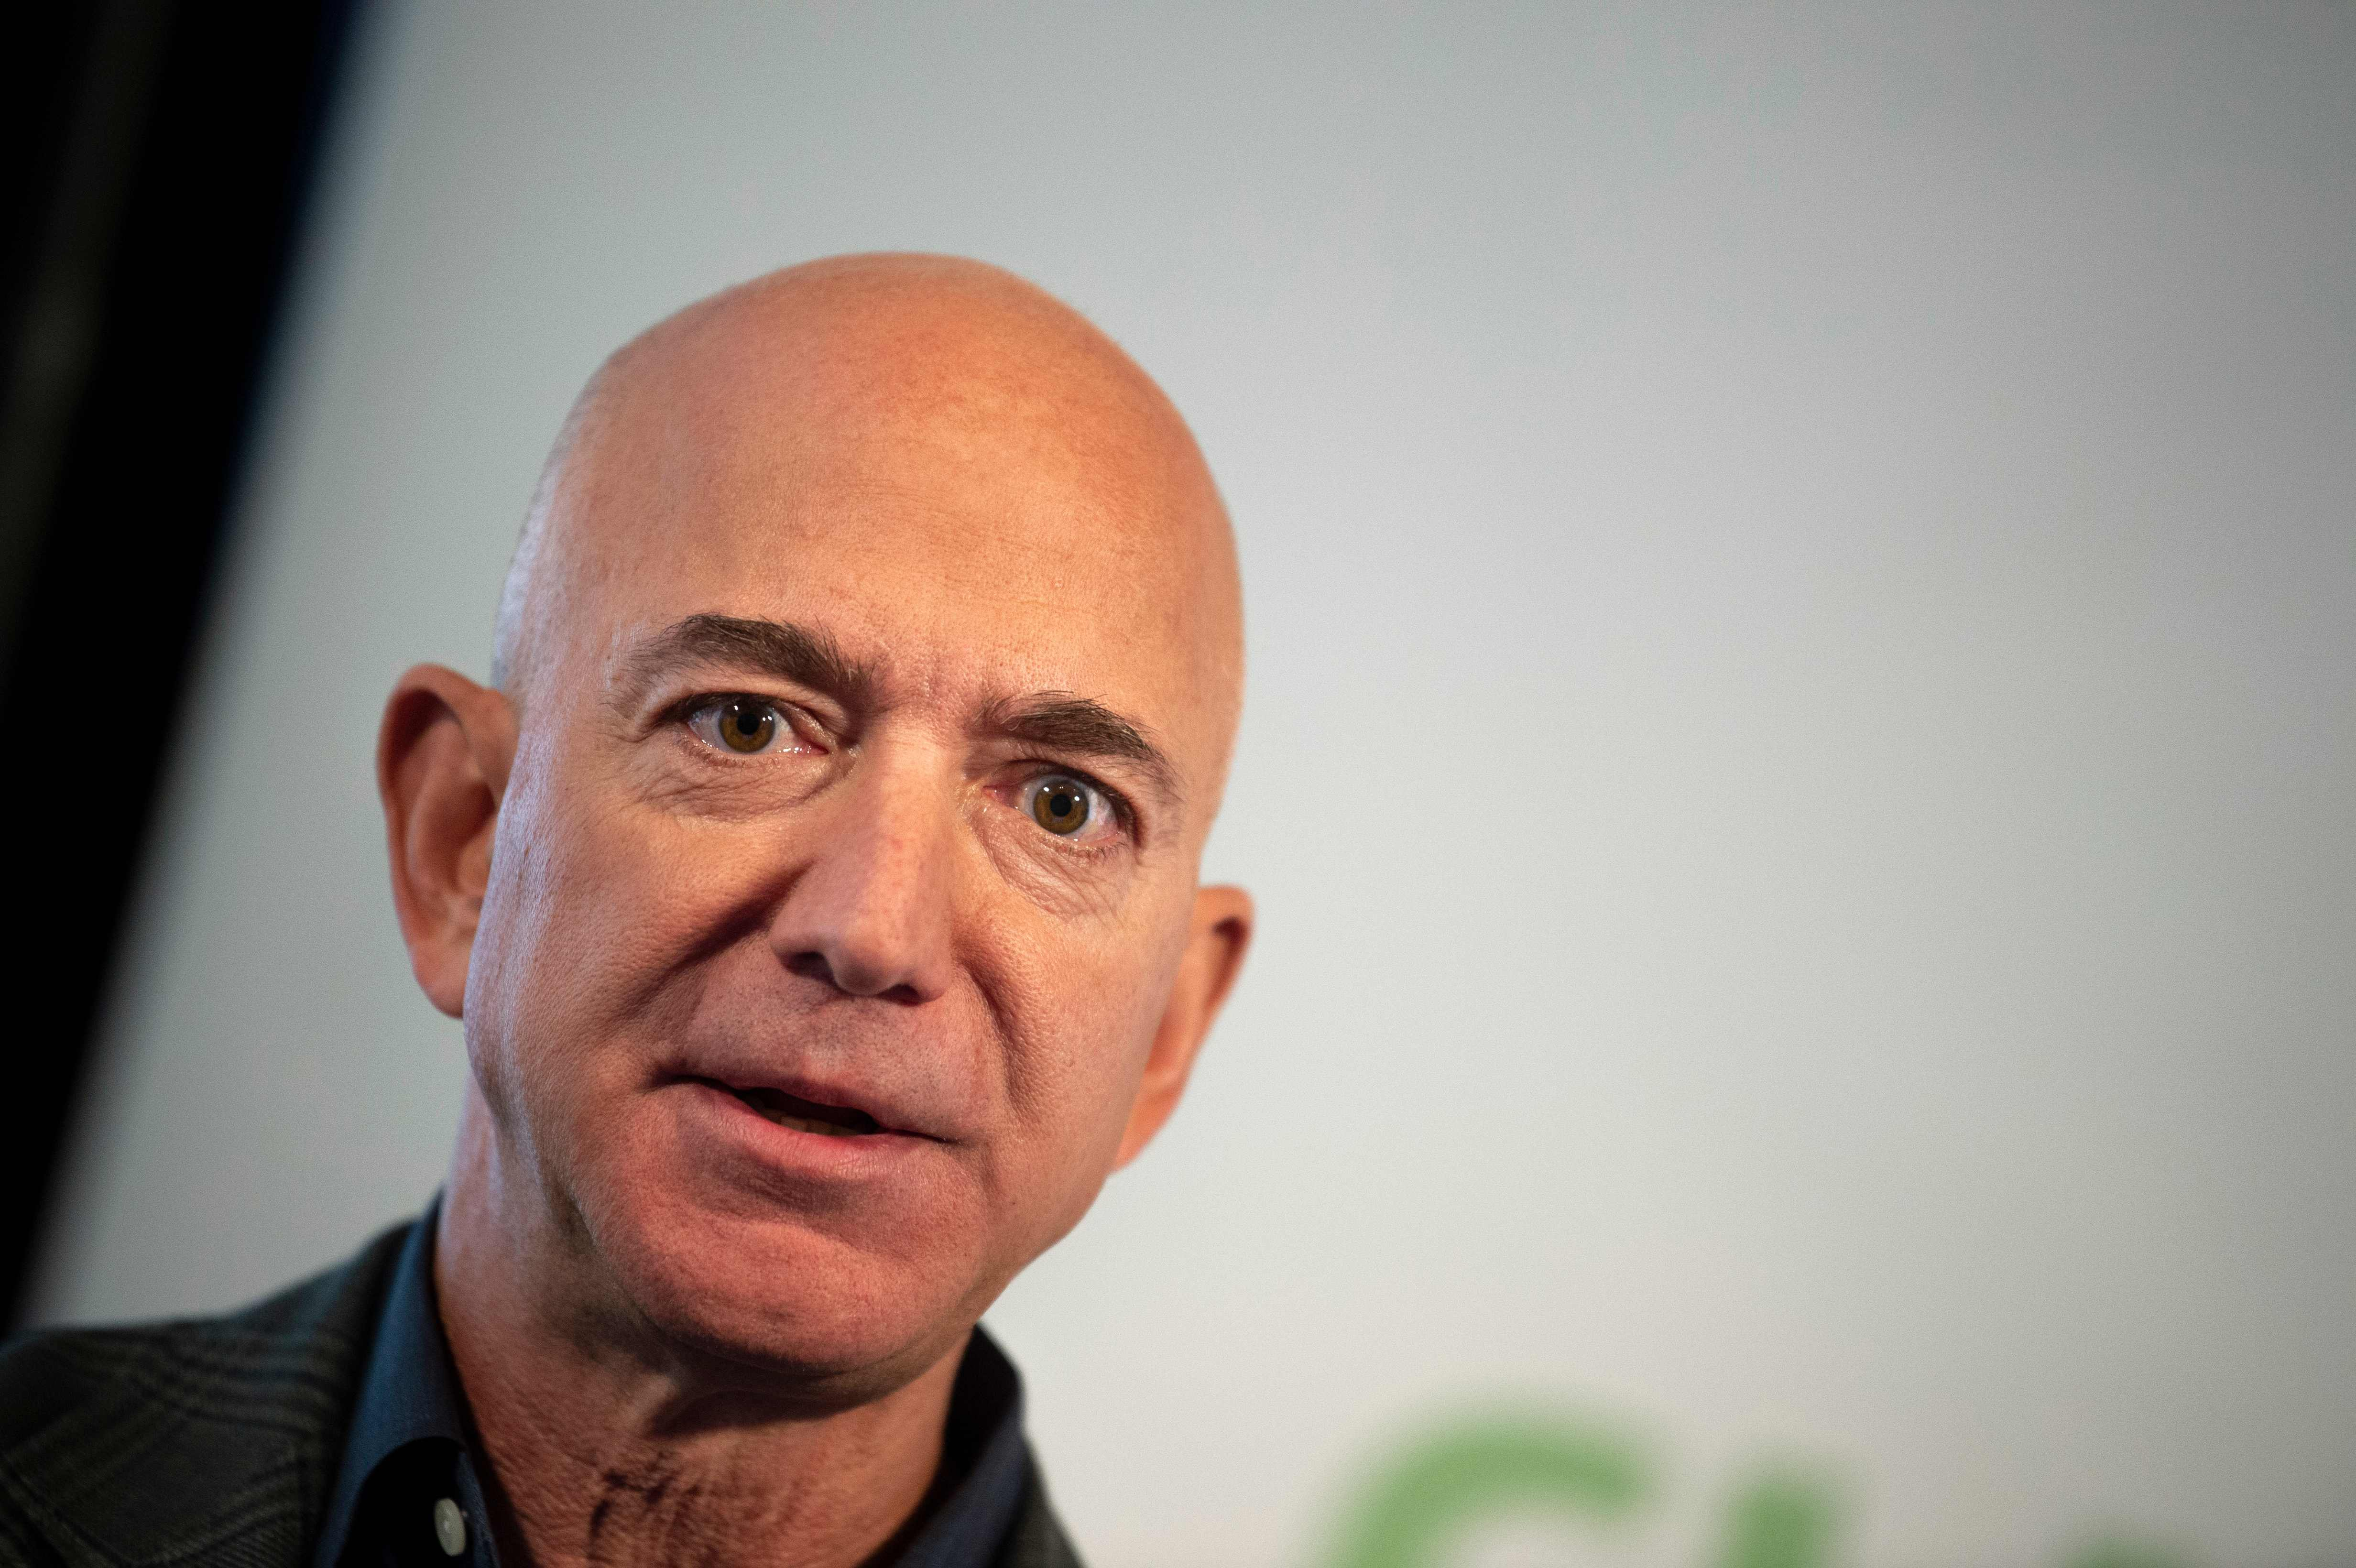 Amazon founder Jeff Bezos recently revealed he'll be stepping down as CEO of the company to focus on other projects